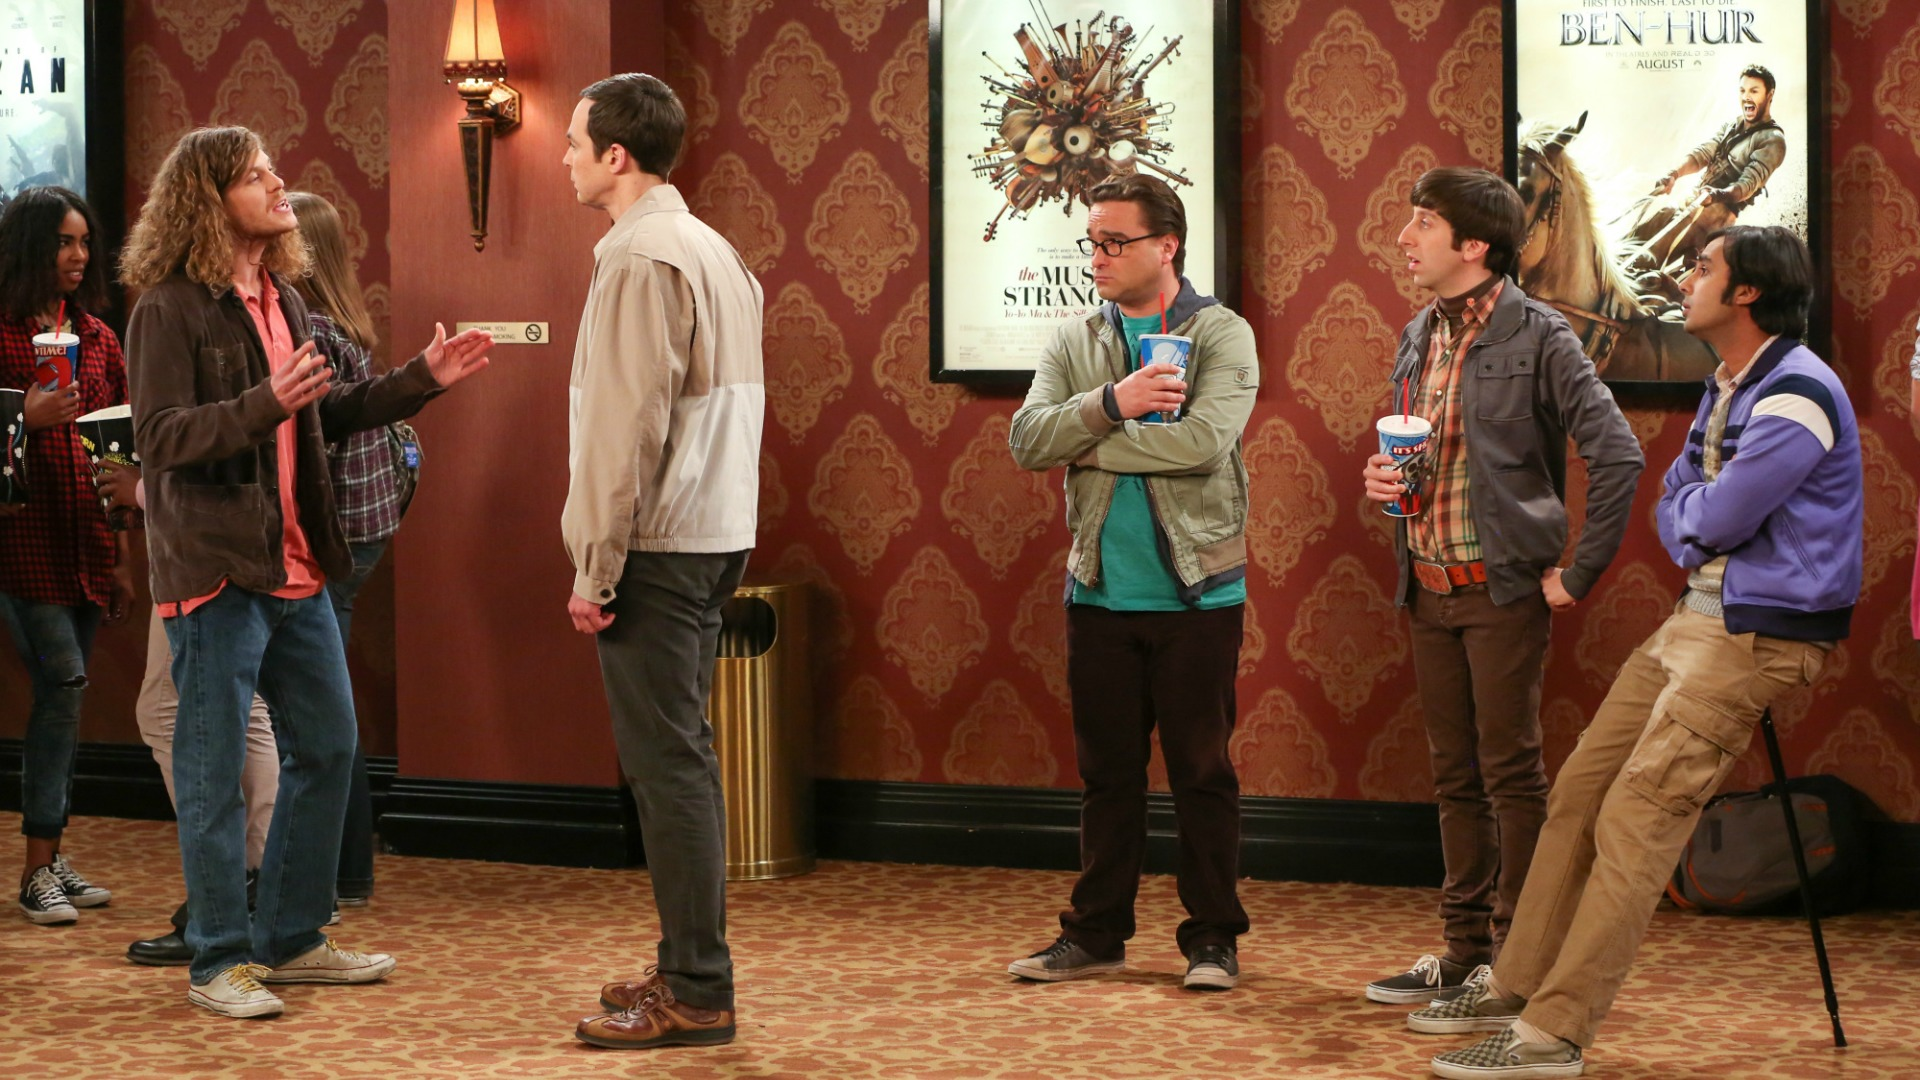 Sheldon has words with another movie-goer in line.